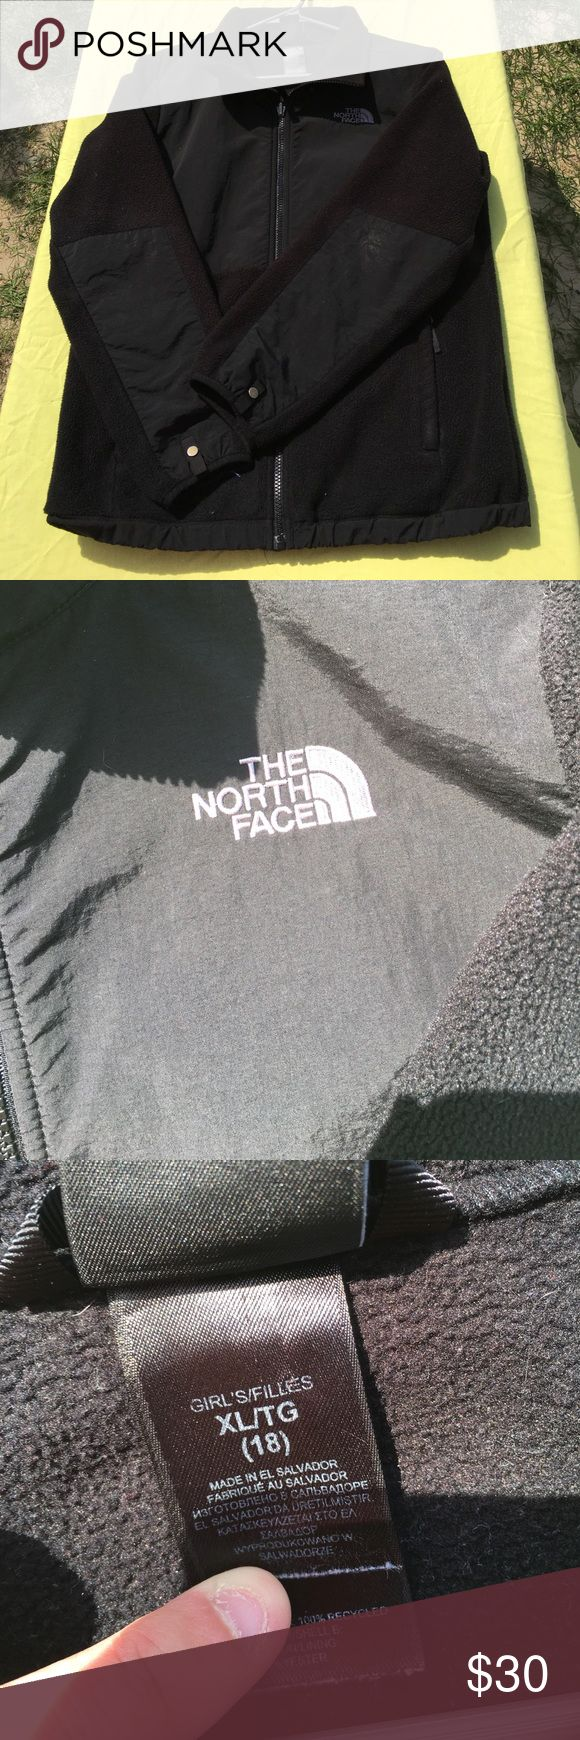 """Girls North Face Jacket Used - Size XL in Girls - Black - Has name written on """"This Jacket Belongs To"""" tag but that can be written over/marked out - otherwise just gently used condition The North Face Jackets & Coats"""